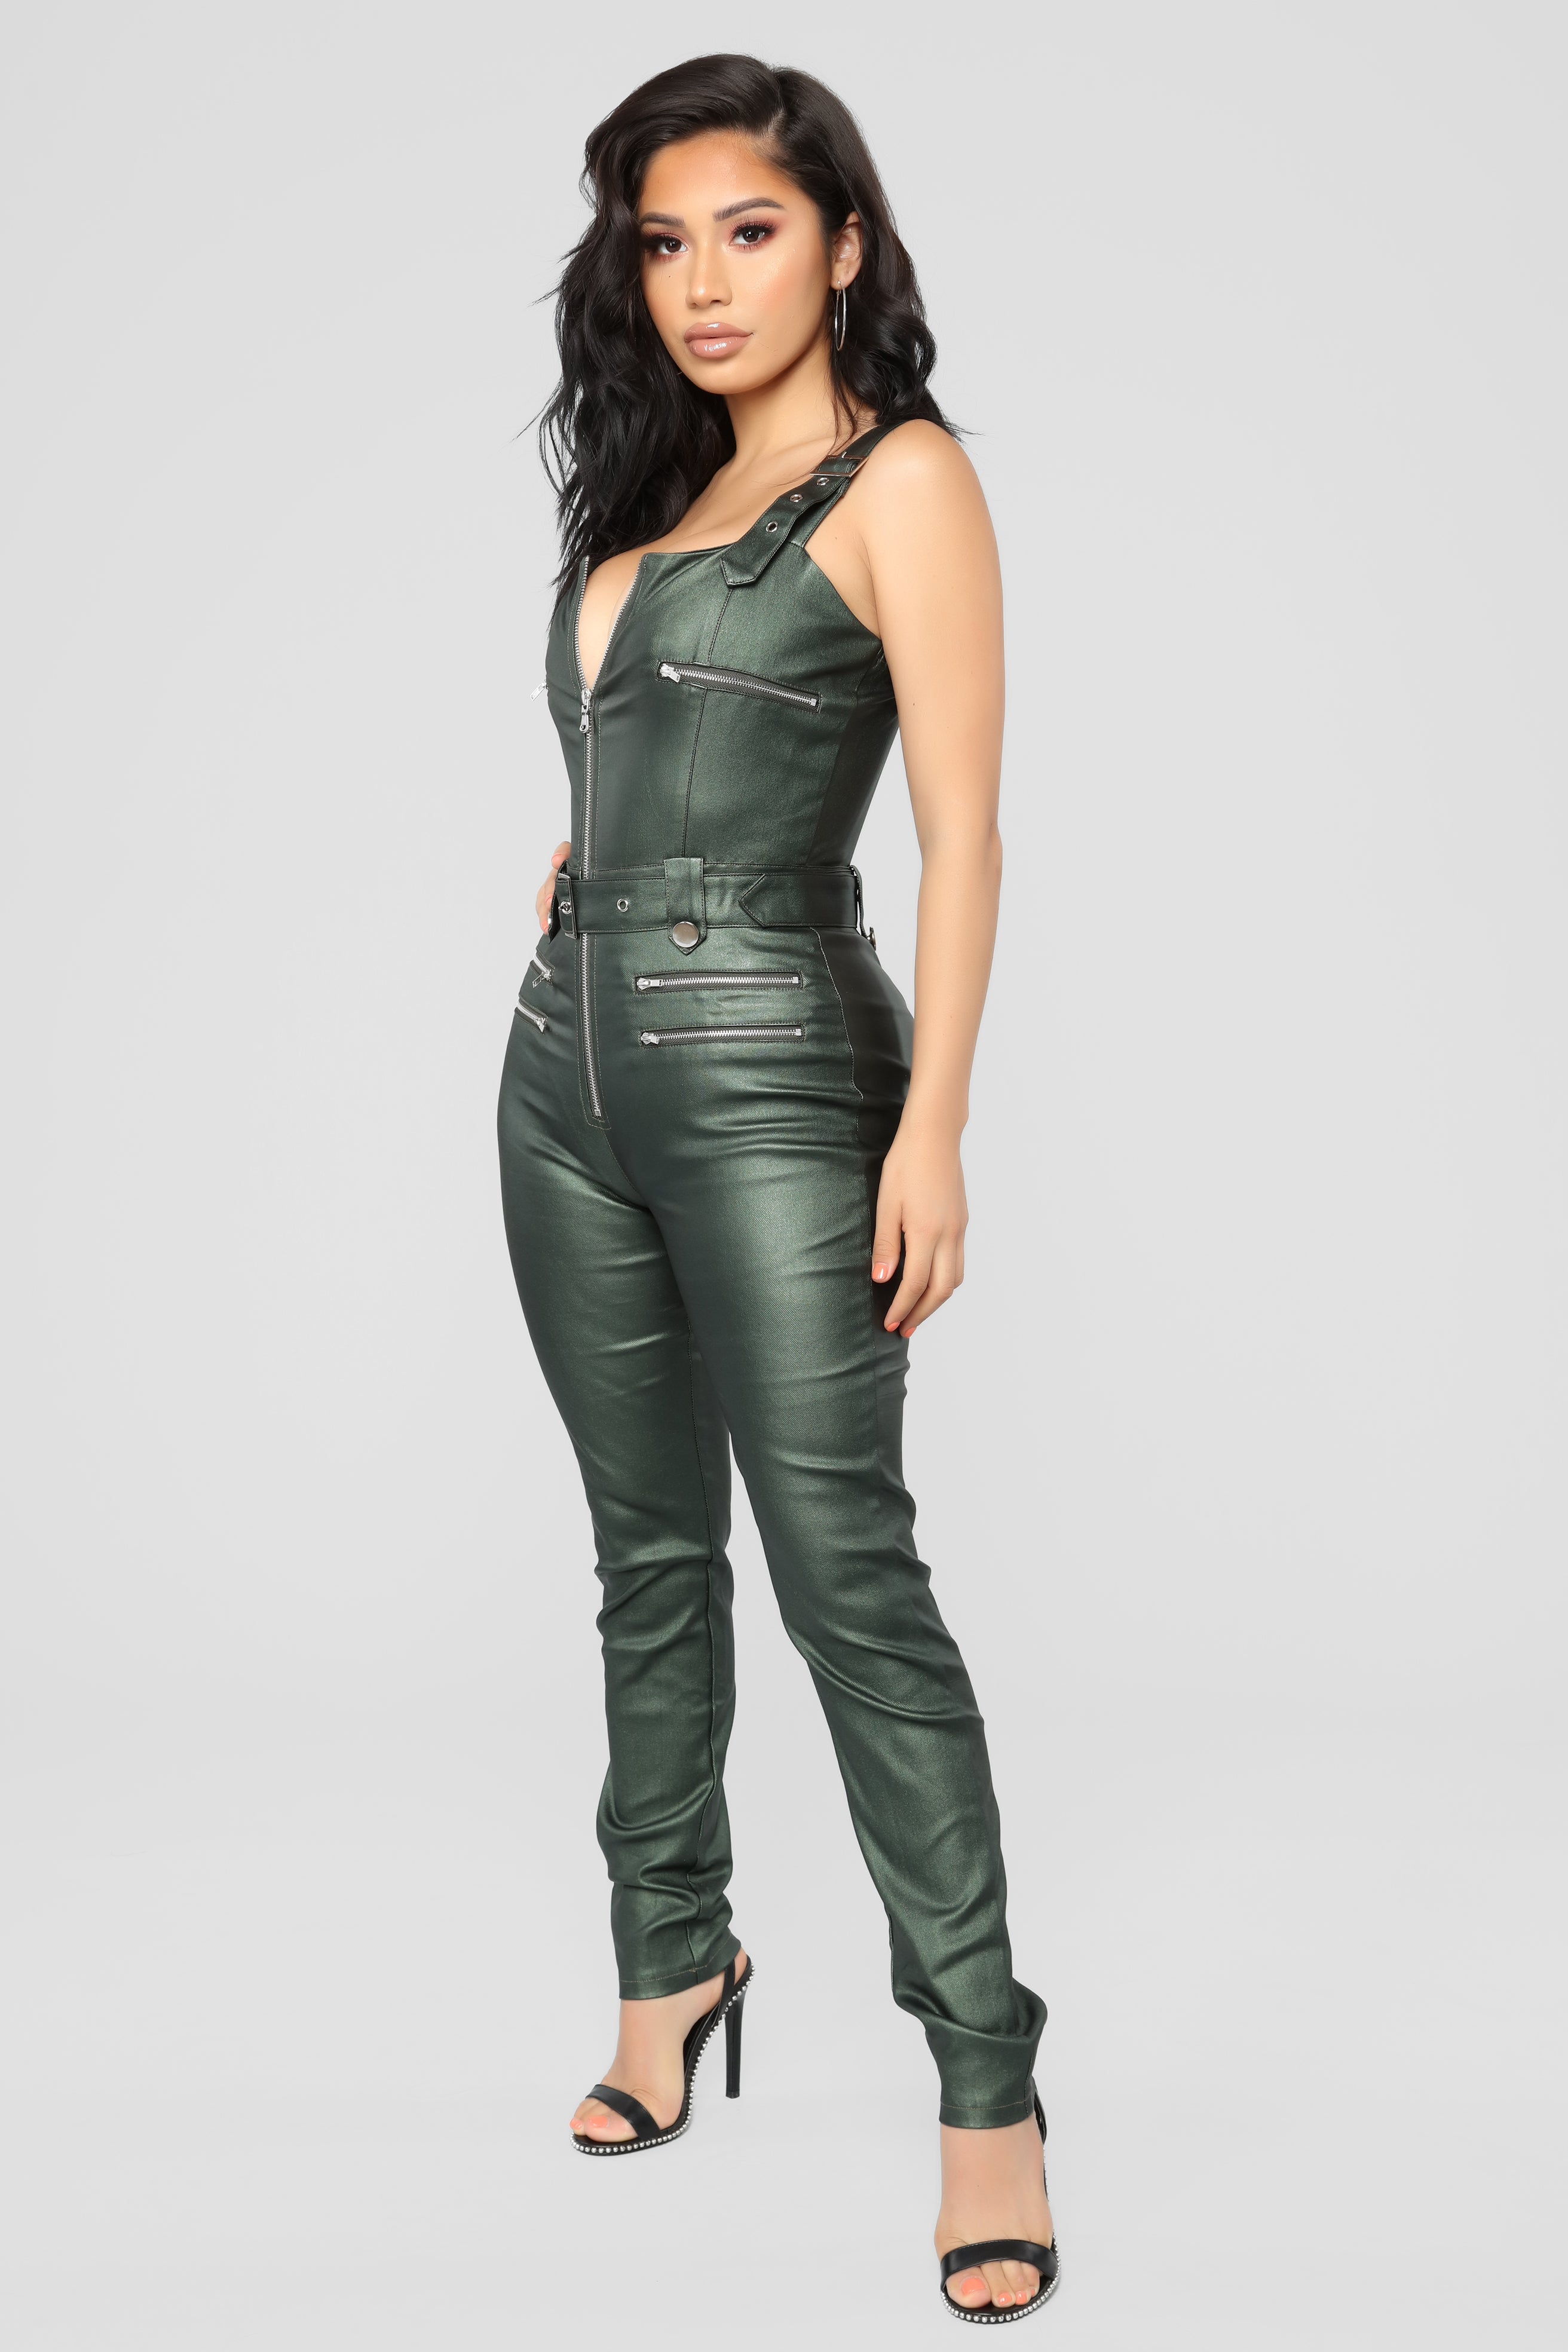 4c4fba3d5f0d Hunt You Down Overall Jumpsuit - Hunter